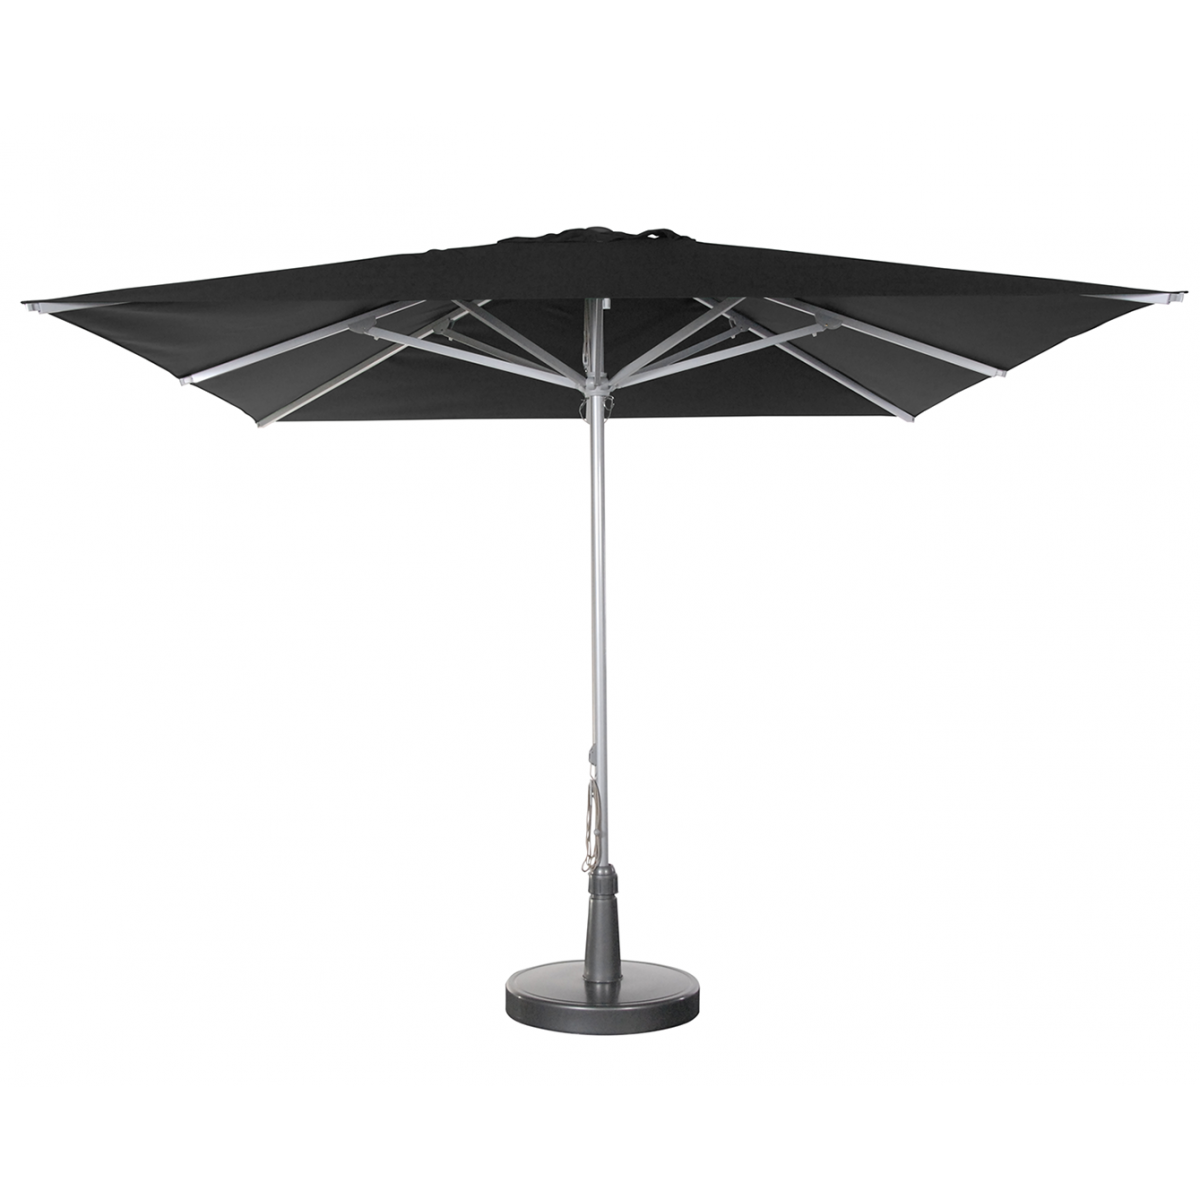 parasol solero patio mat centr carr de 3x3m aluminium argent. Black Bedroom Furniture Sets. Home Design Ideas